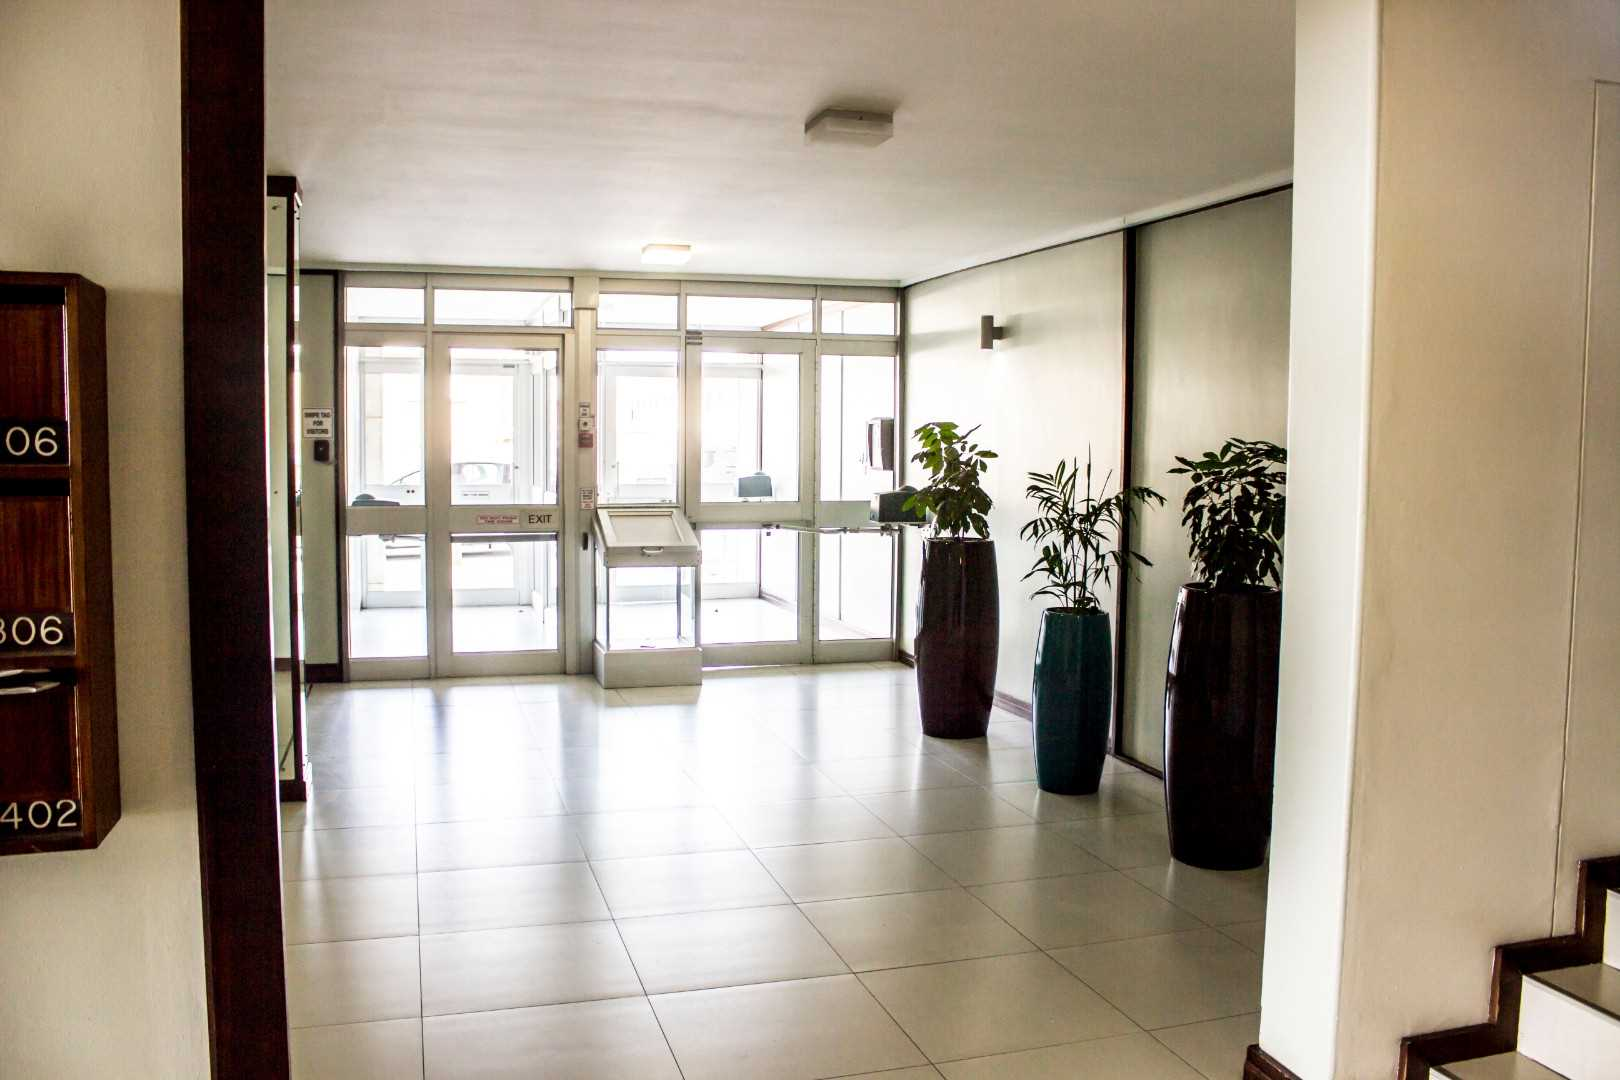 Foyer at Marine Towers with bio-metric finger print security access.